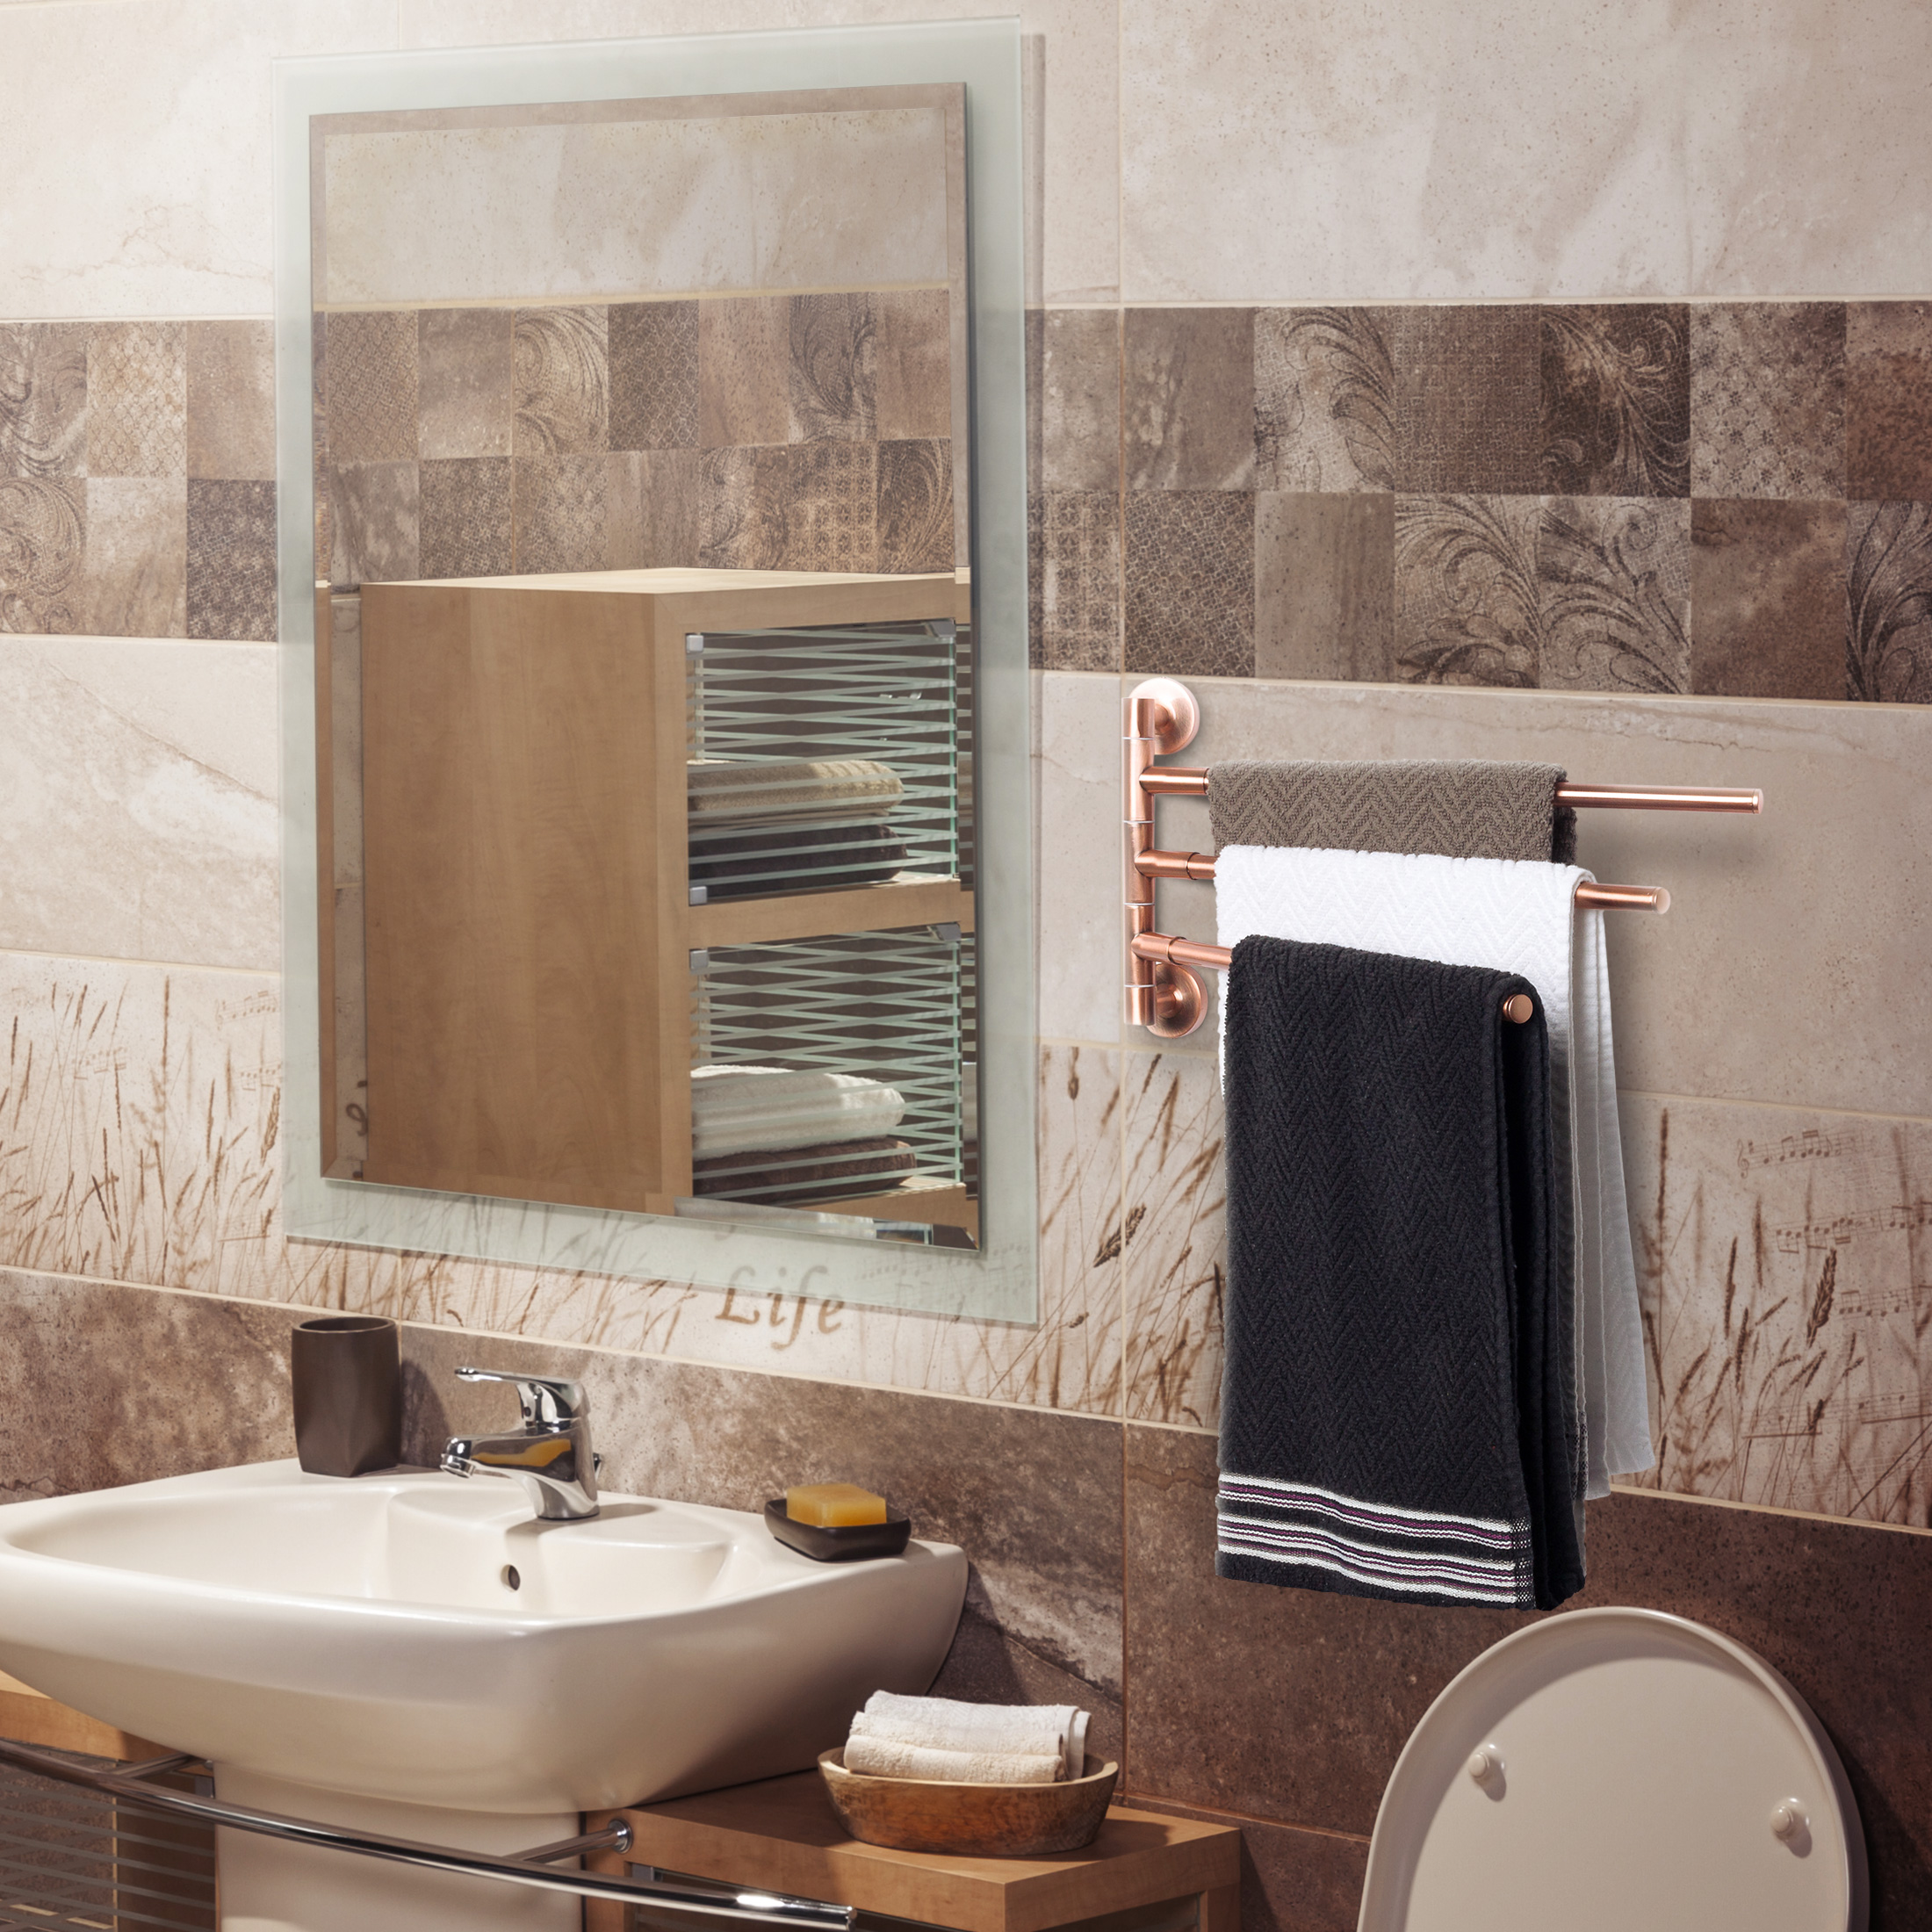 bathrooms design bathroom inserts bar classic sets winsome towel ceramic bars contemporary